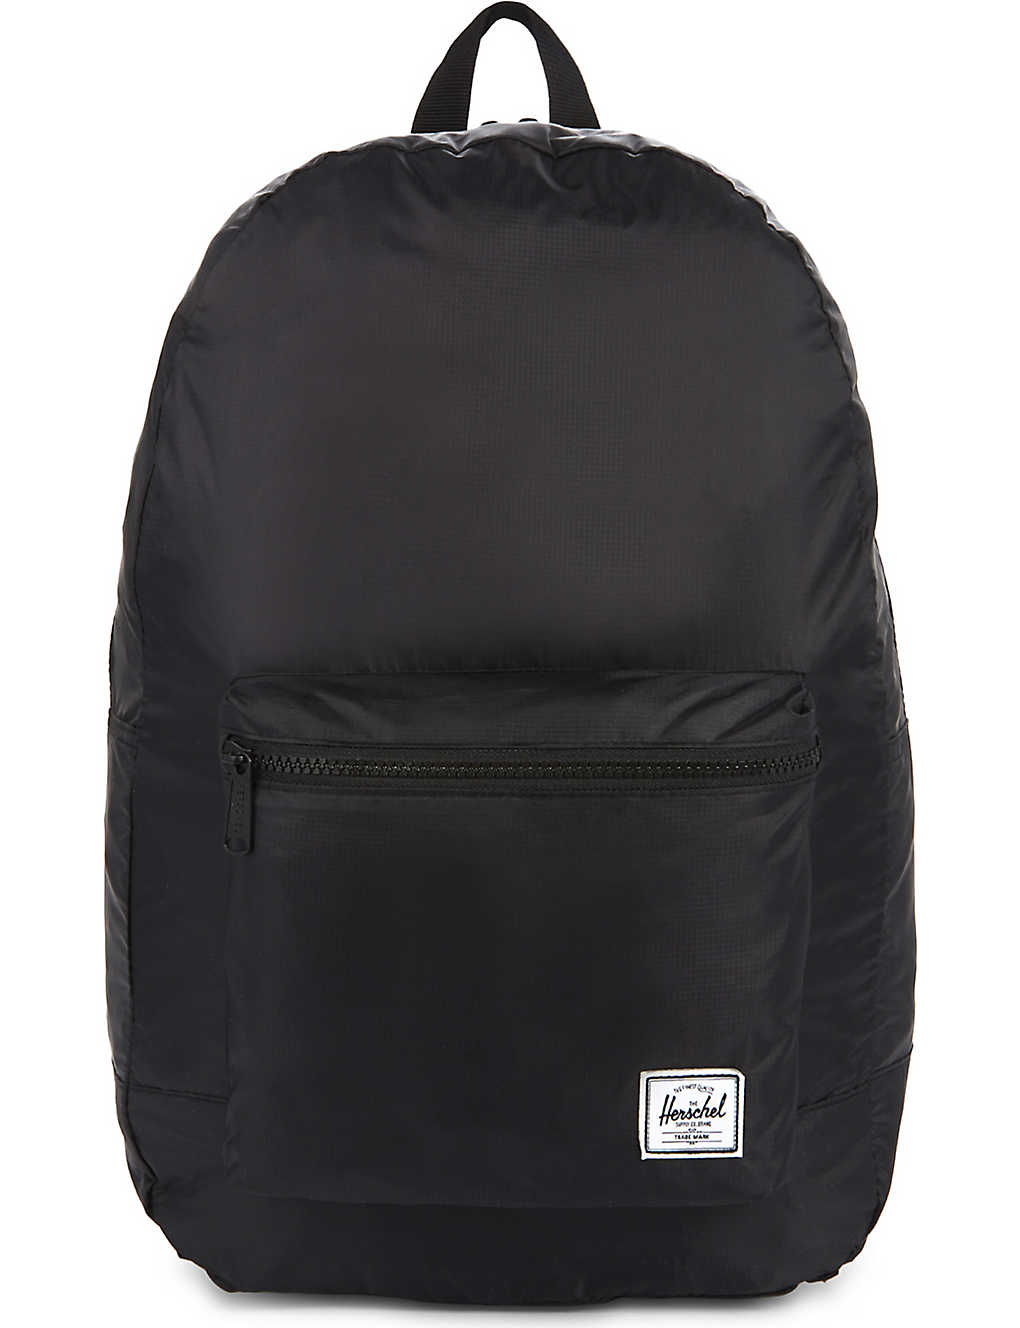 63f078f6056 HERSCHEL SUPPLY CO - Packable Daypack backpack